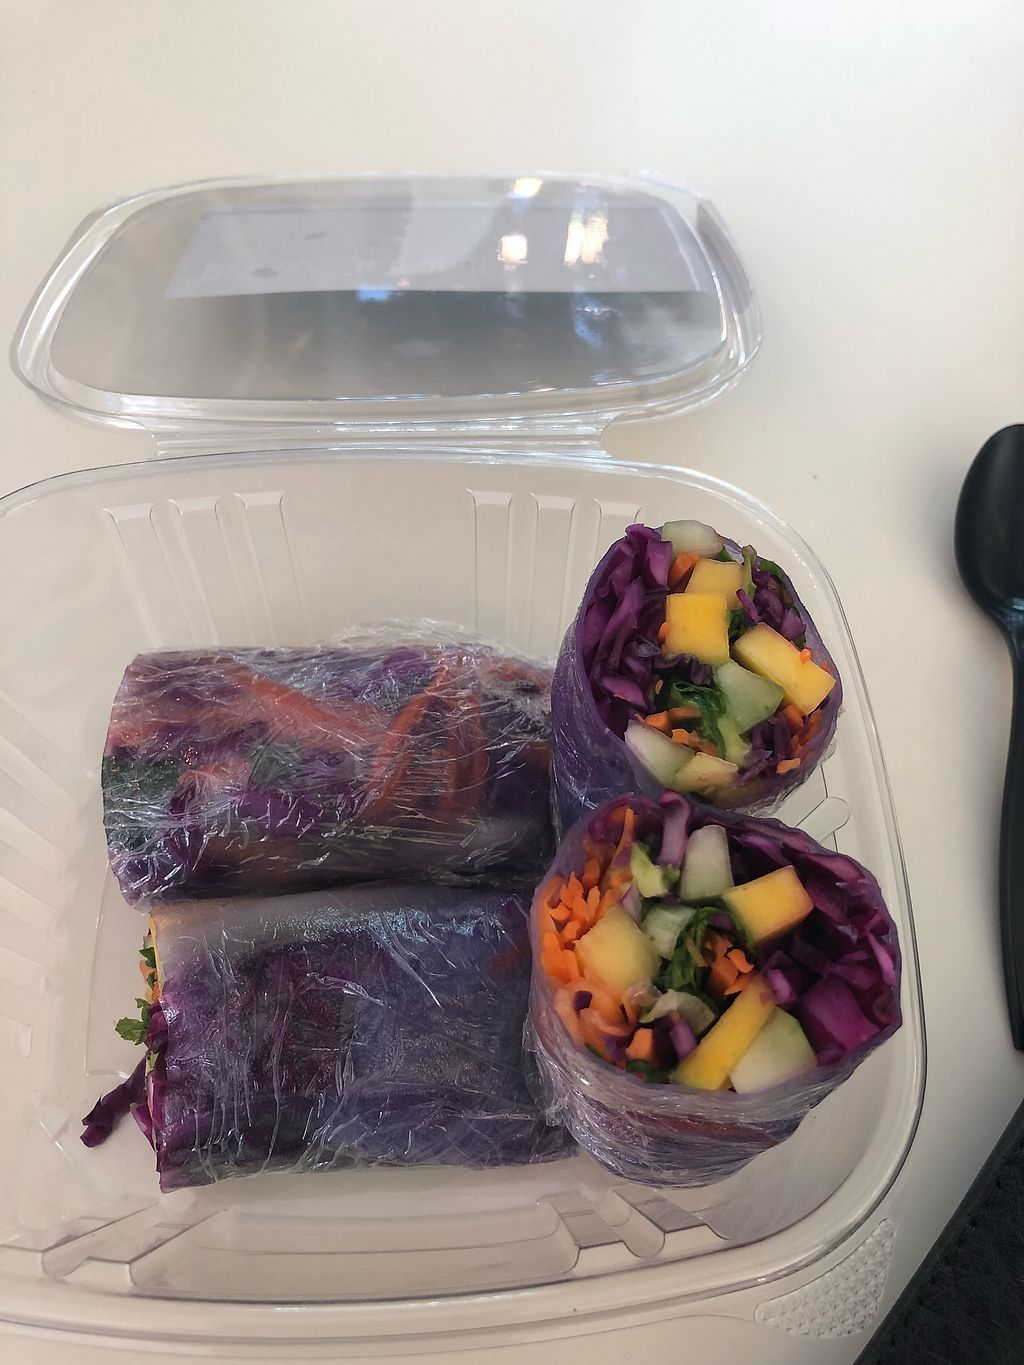 """Photo of Raw Junkies  by <a href=""""/members/profile/lizmu"""">lizmu</a> <br/>Rainbow Rice paper rolls <br/> January 23, 2018  - <a href='/contact/abuse/image/72151/350204'>Report</a>"""